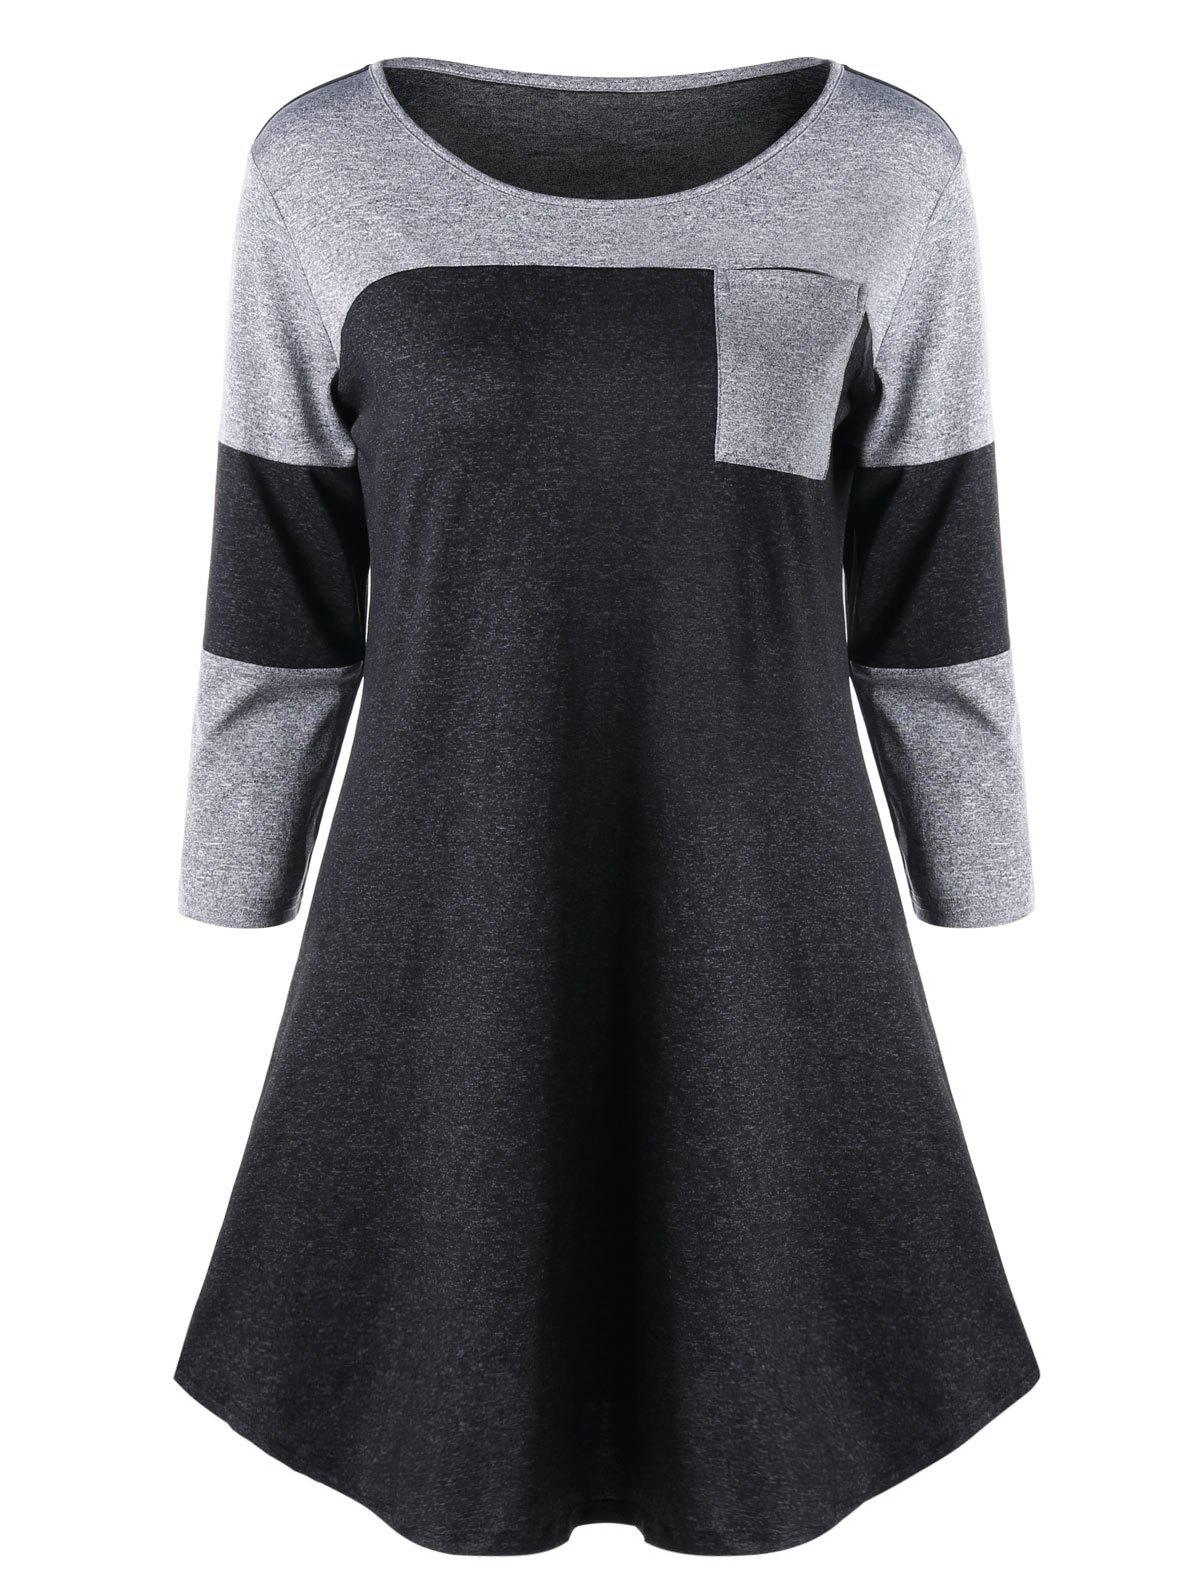 Marled Patch Pocket Tunic TopWOMEN<br><br>Size: M; Color: GRAY; Material: Polyester,Spandex; Shirt Length: Long; Sleeve Length: Half; Collar: Round Neck; Style: Casual; Season: Fall,Spring,Summer; Pattern Type: Solid; Weight: 0.2700kg; Package Contents: 1 x Top;